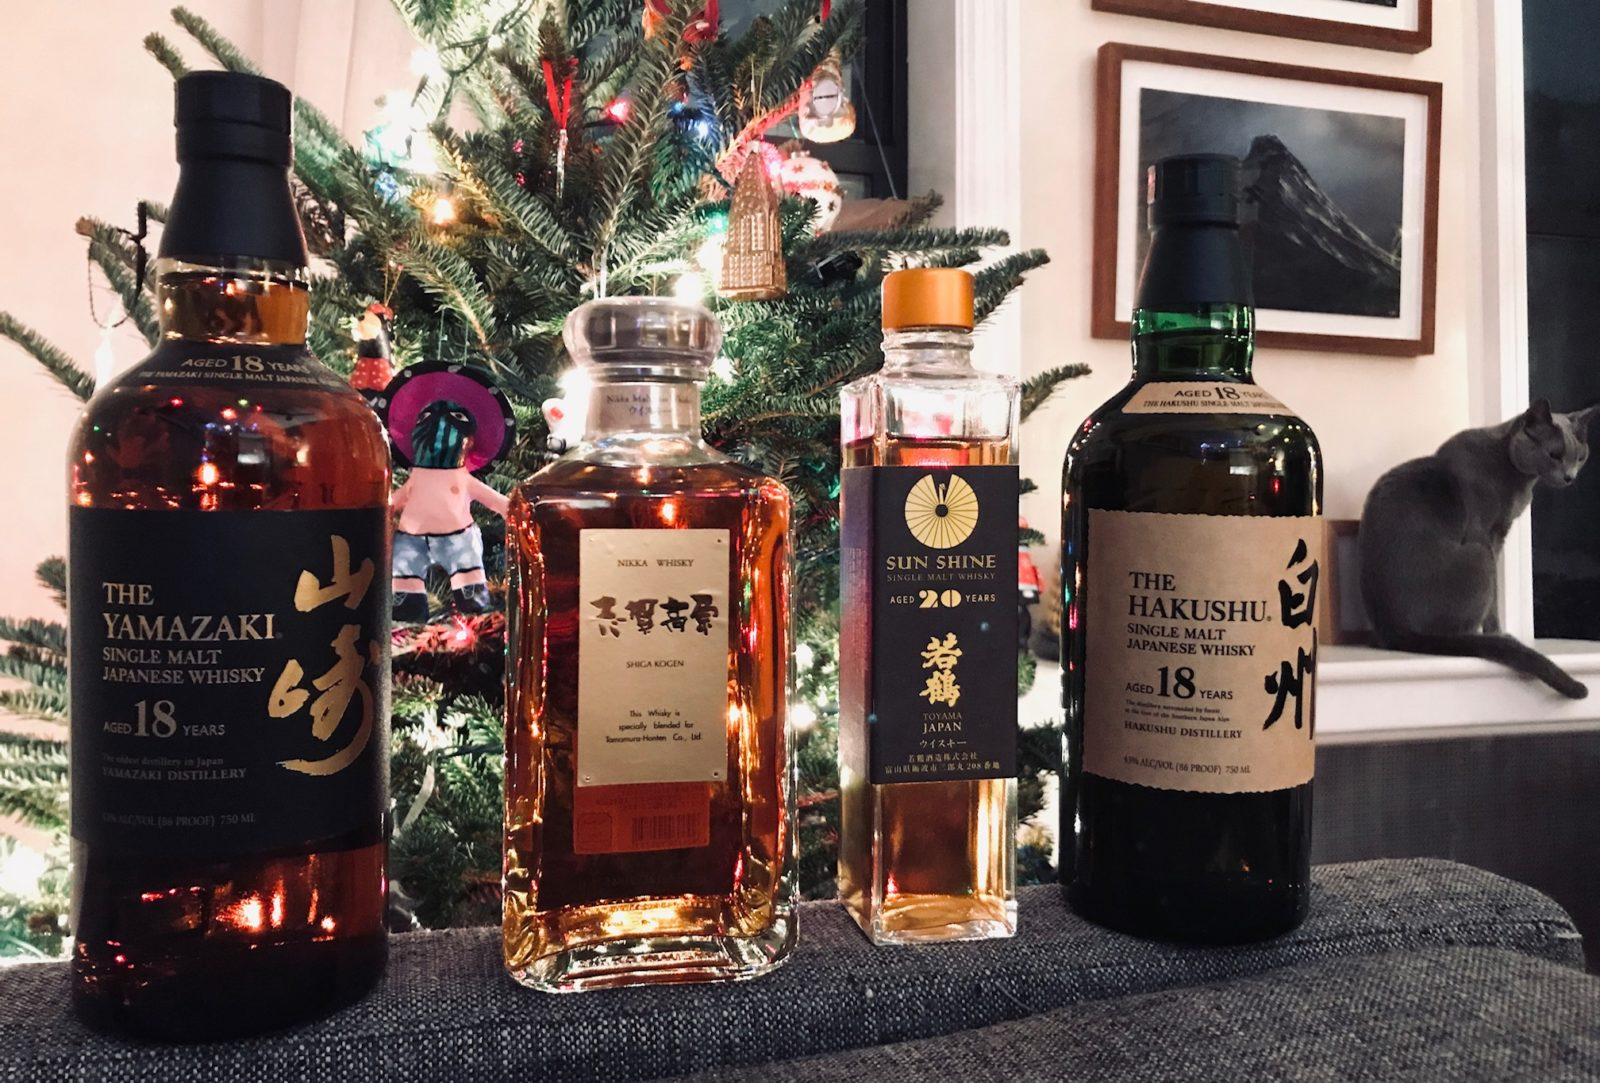 Christmas Japanese Whisky from Ryan in Brooklyn New York Featuring Suntory and Nikka